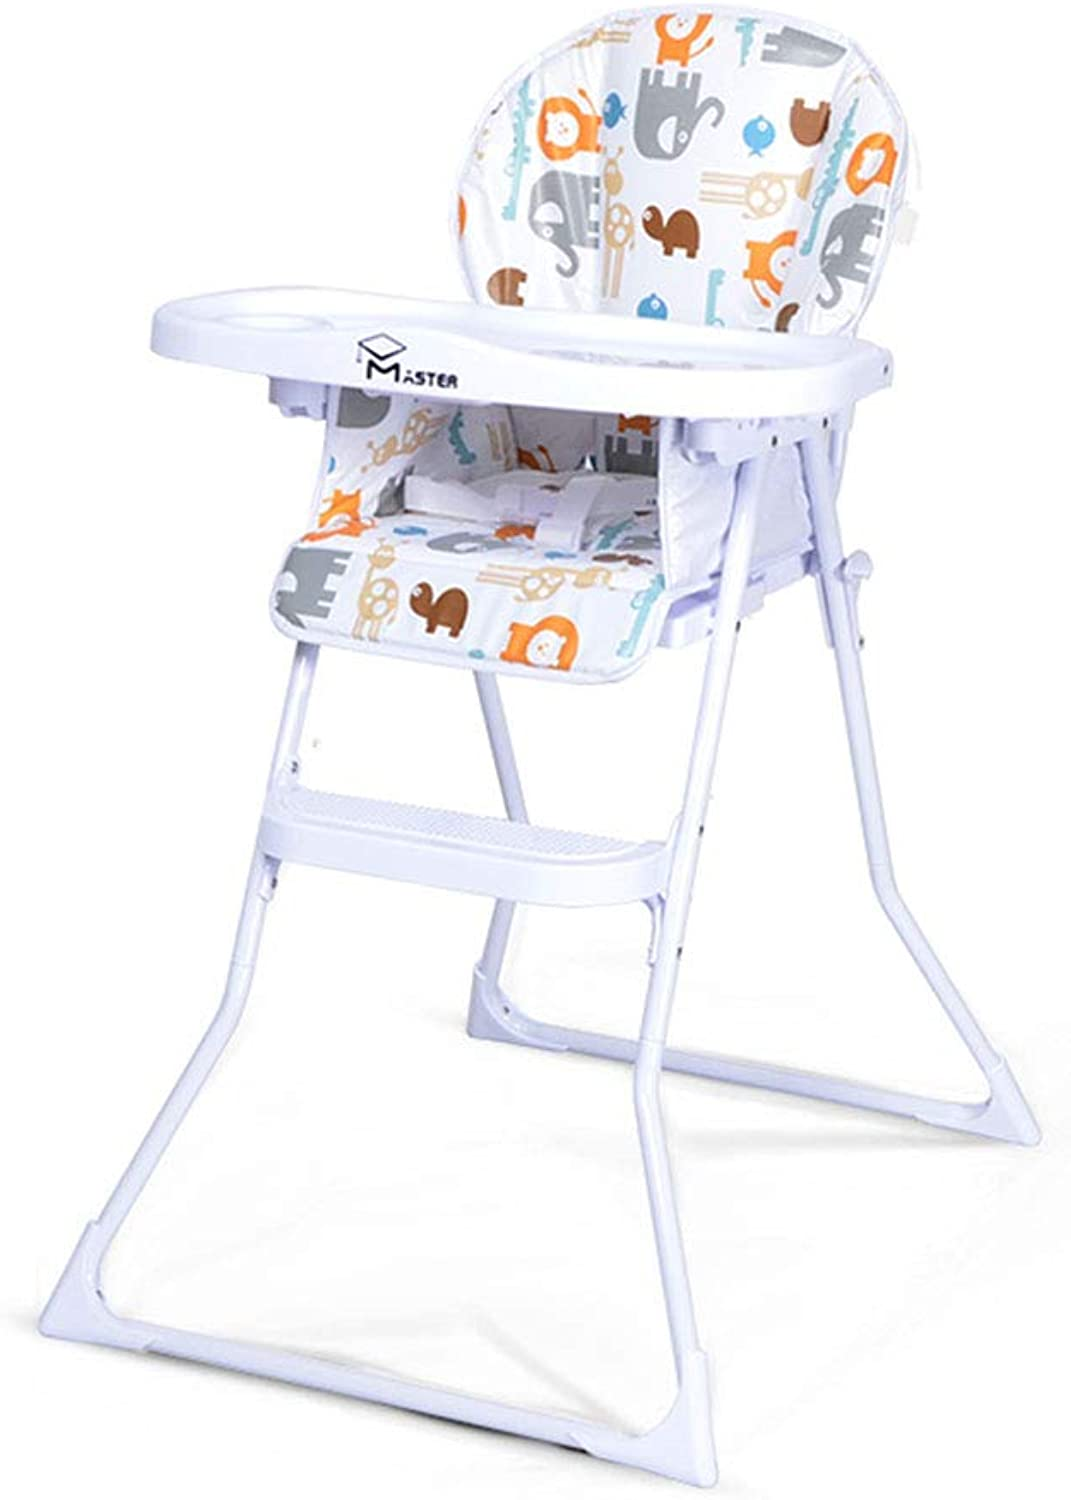 High Chair Baby Dining Chair Multi-Function seat Learning Chair Portable Folding (color   White, Size   57  70  97cm)